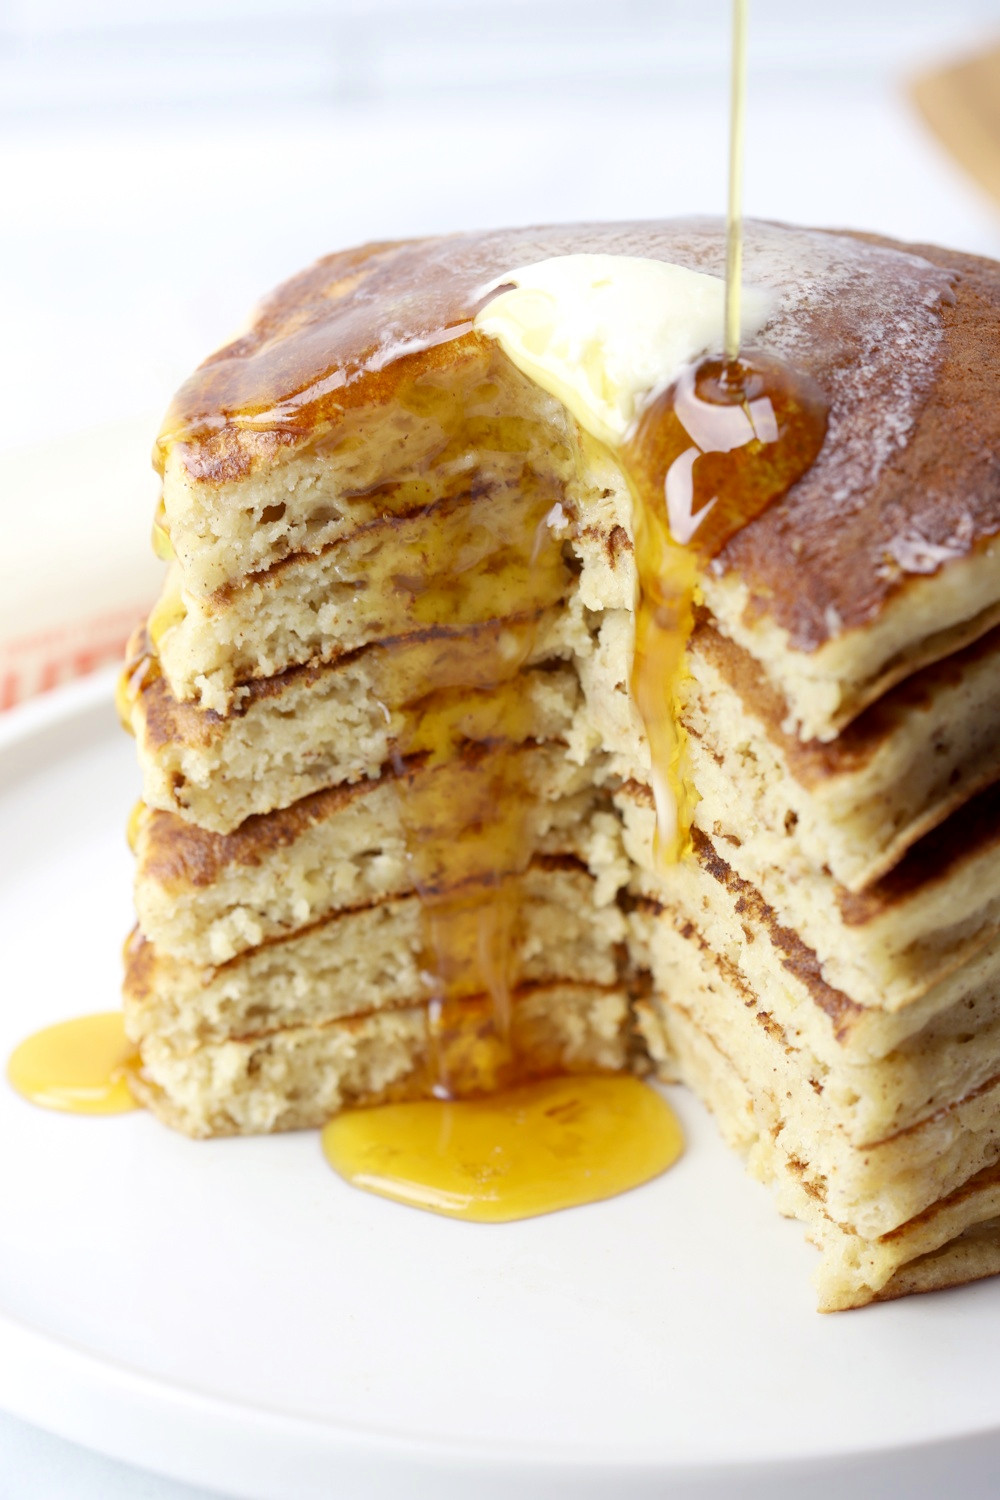 Maple syrup and melting butter dripping down a stack of pancakes.